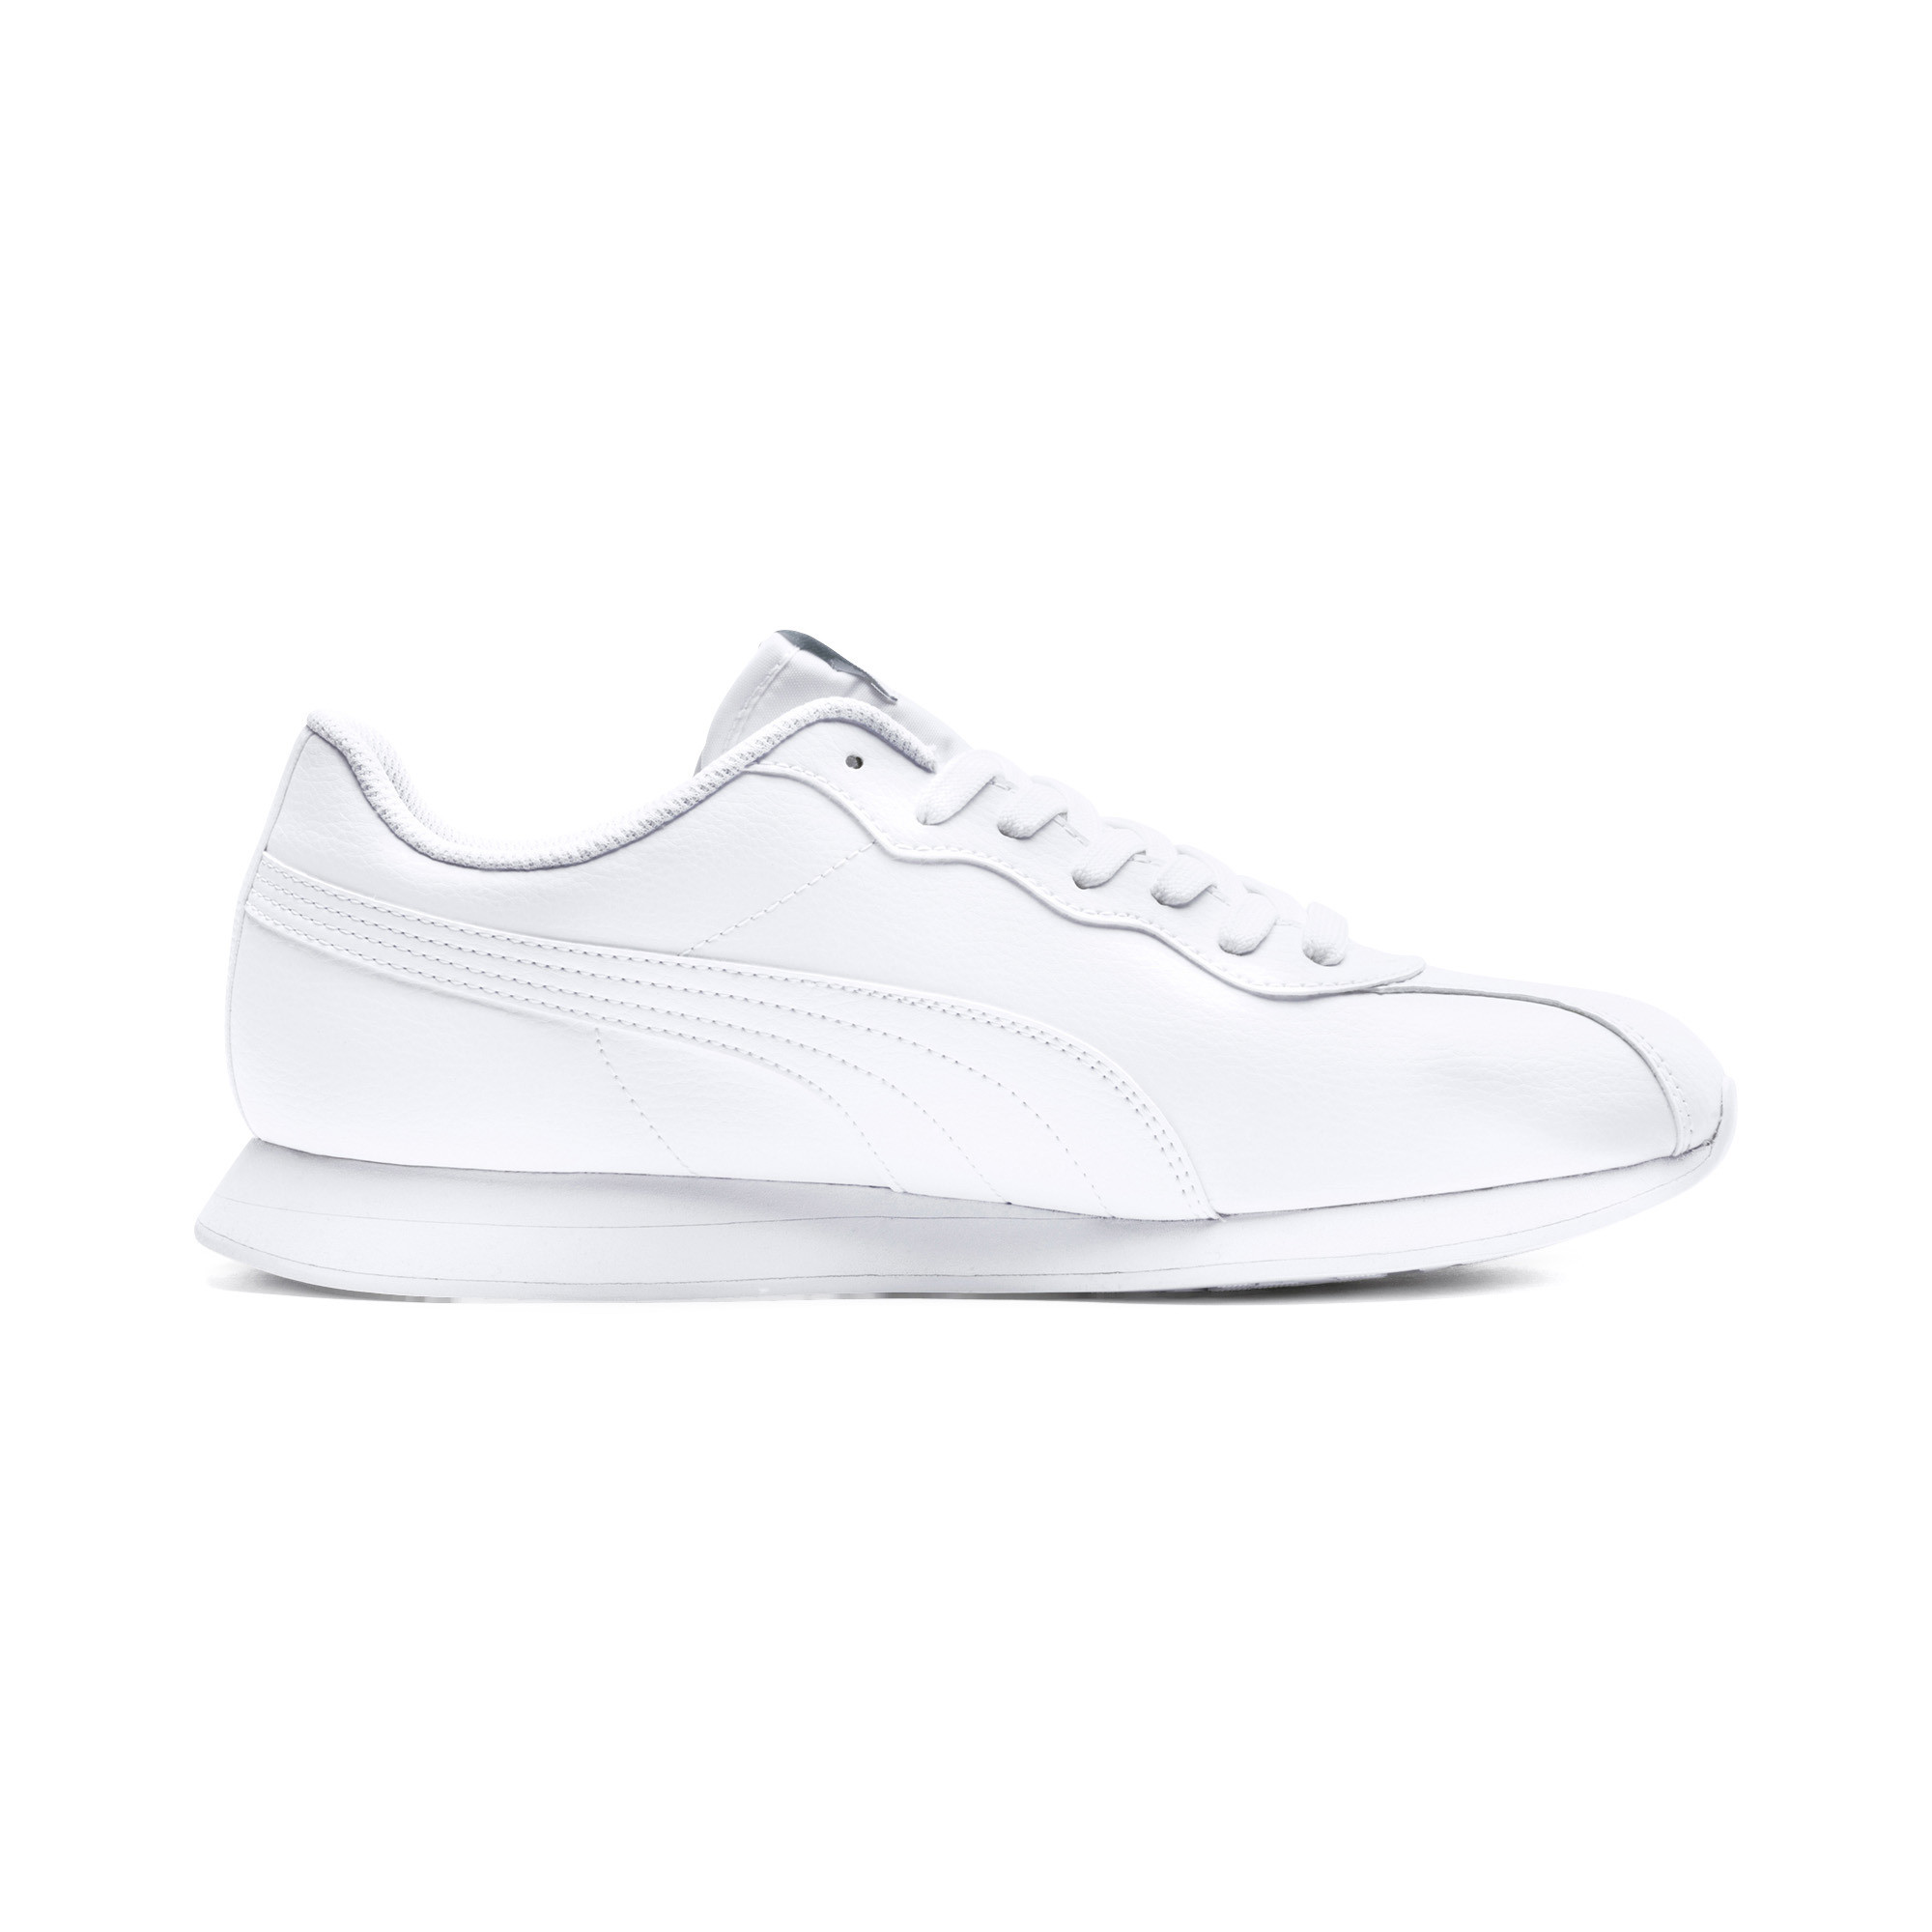 PUMA-Turin-II-Men-039-s-Sneakers-Men-Shoe-Basics thumbnail 11